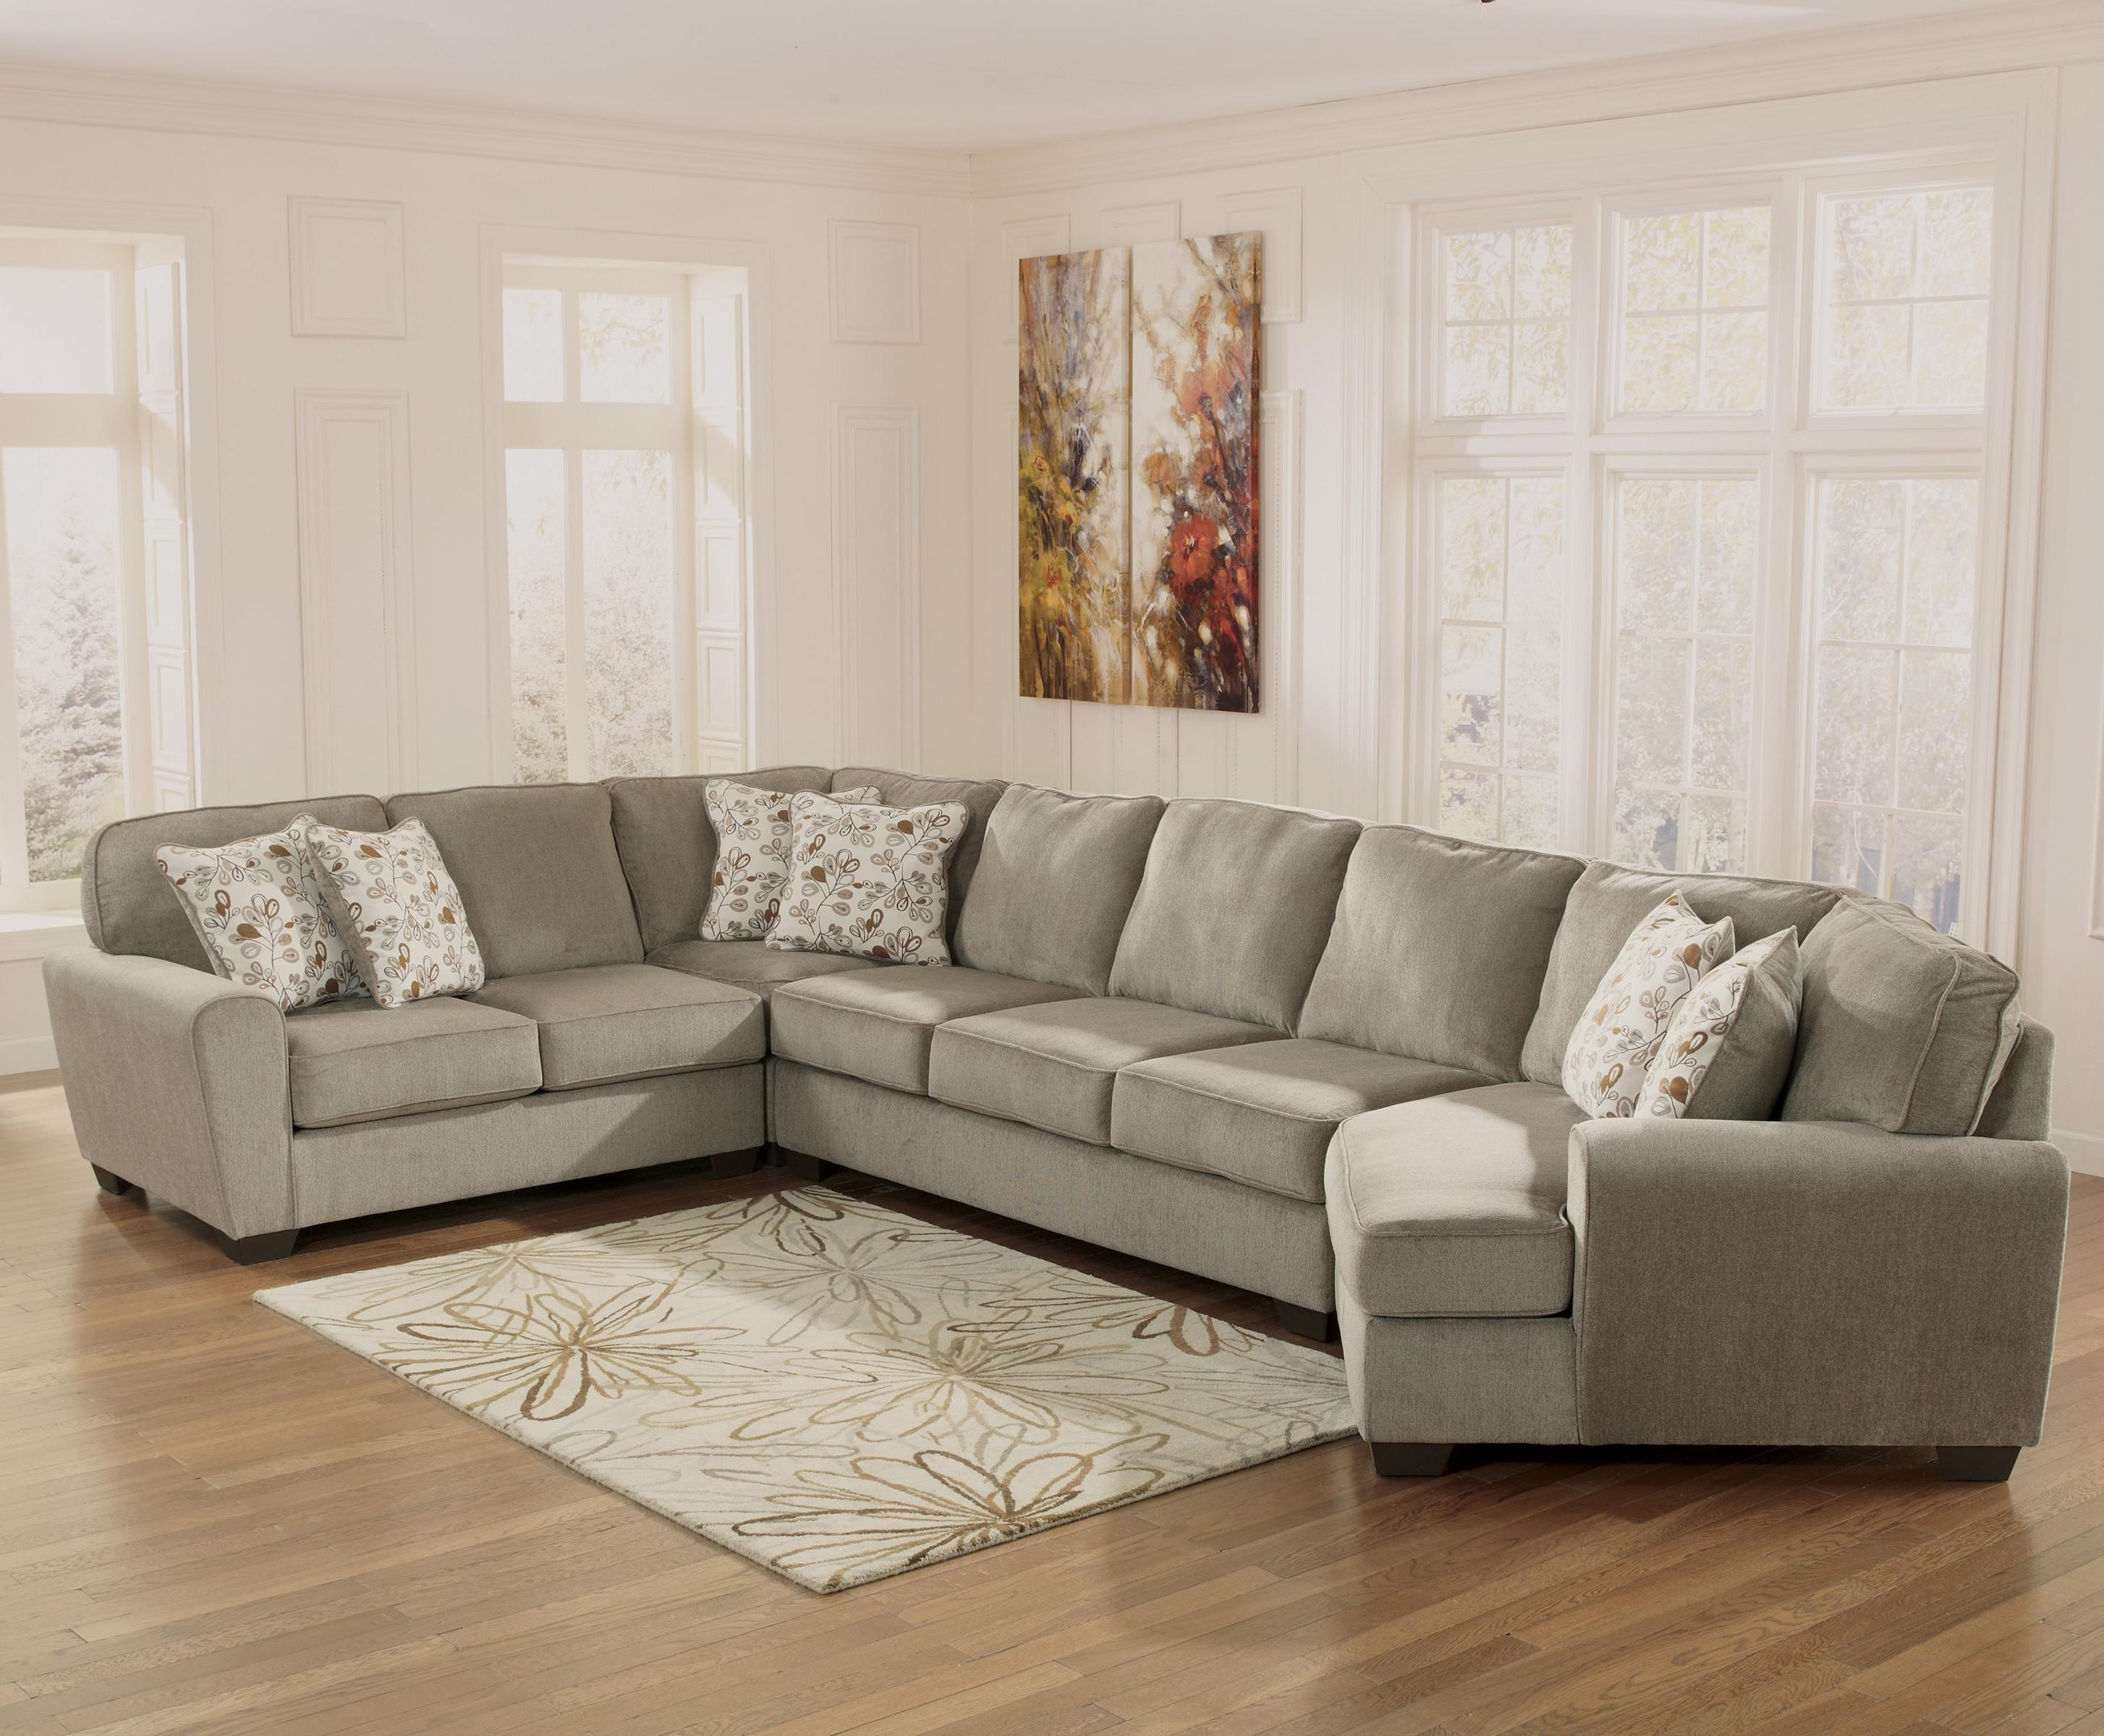 Ordinaire Ashley Furniture Patola Park   Patina4 Piece Sectional With Right Cuddler  ...